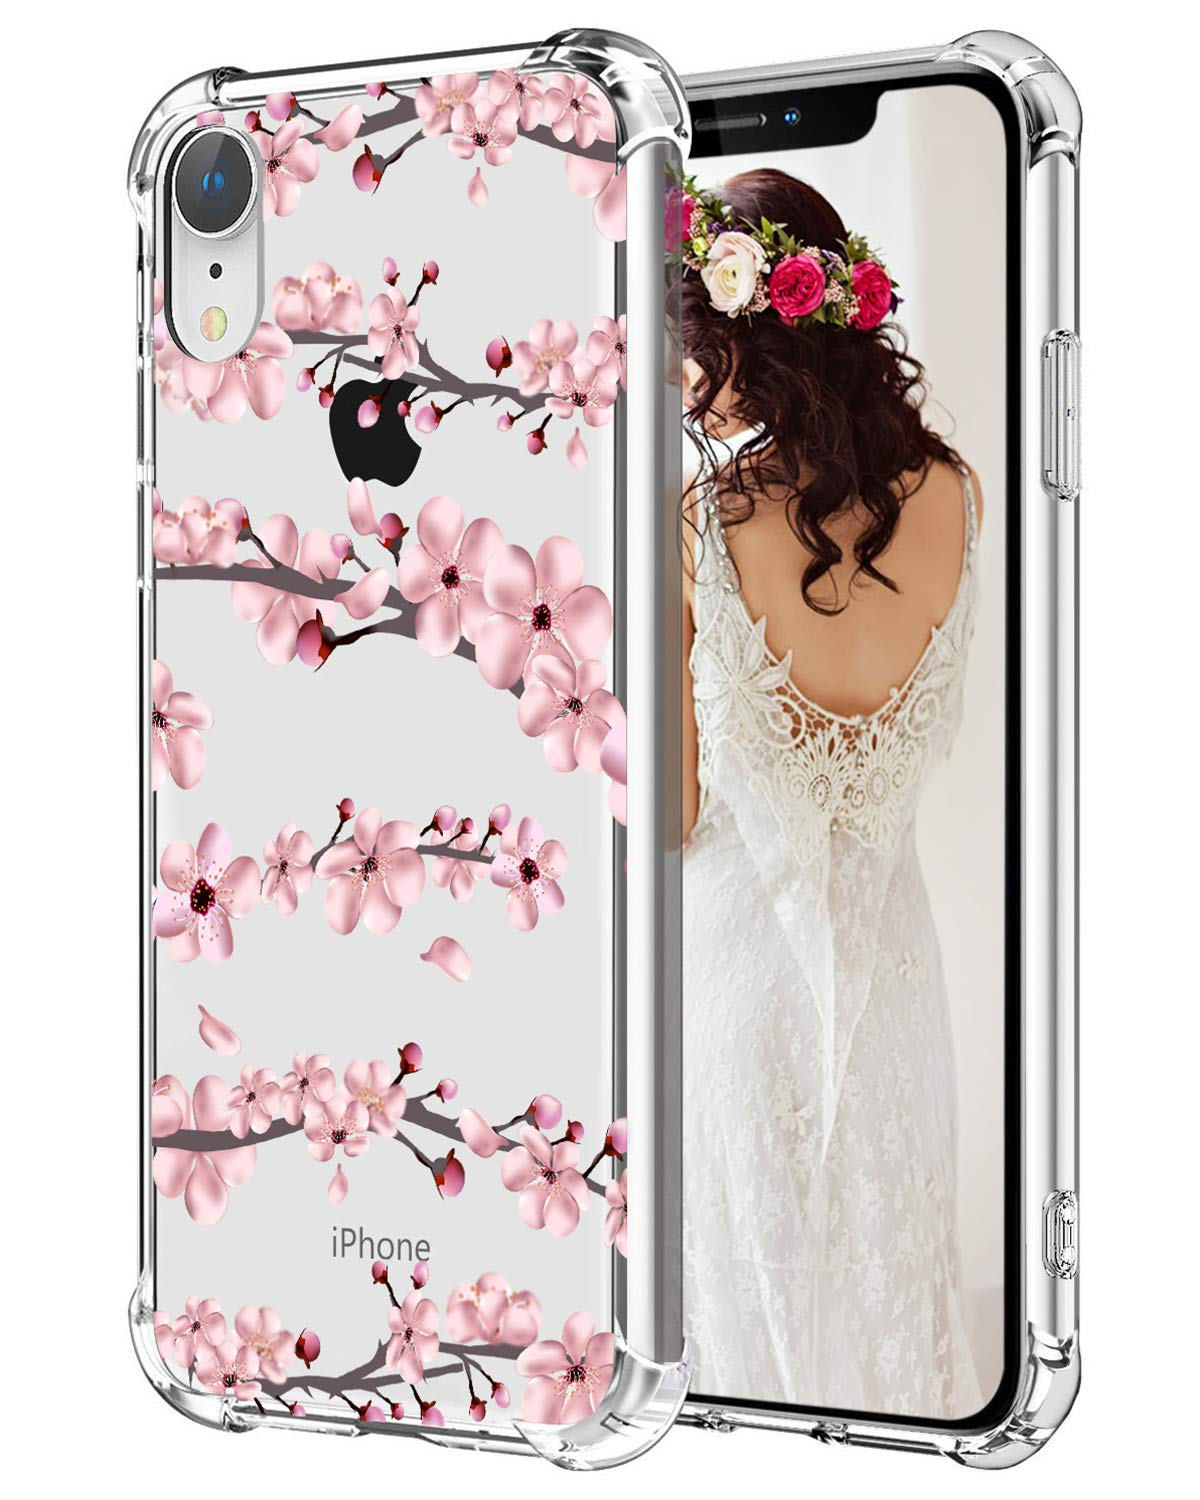 best service f3ec5 5a3fe Hepix iPhone XR Case Pink Cherry Flowers Clear Protective Phone Cover Cases  TPU Frame Anti-Scratch Shock Absorbing Case with Reinforced Bumper for ...